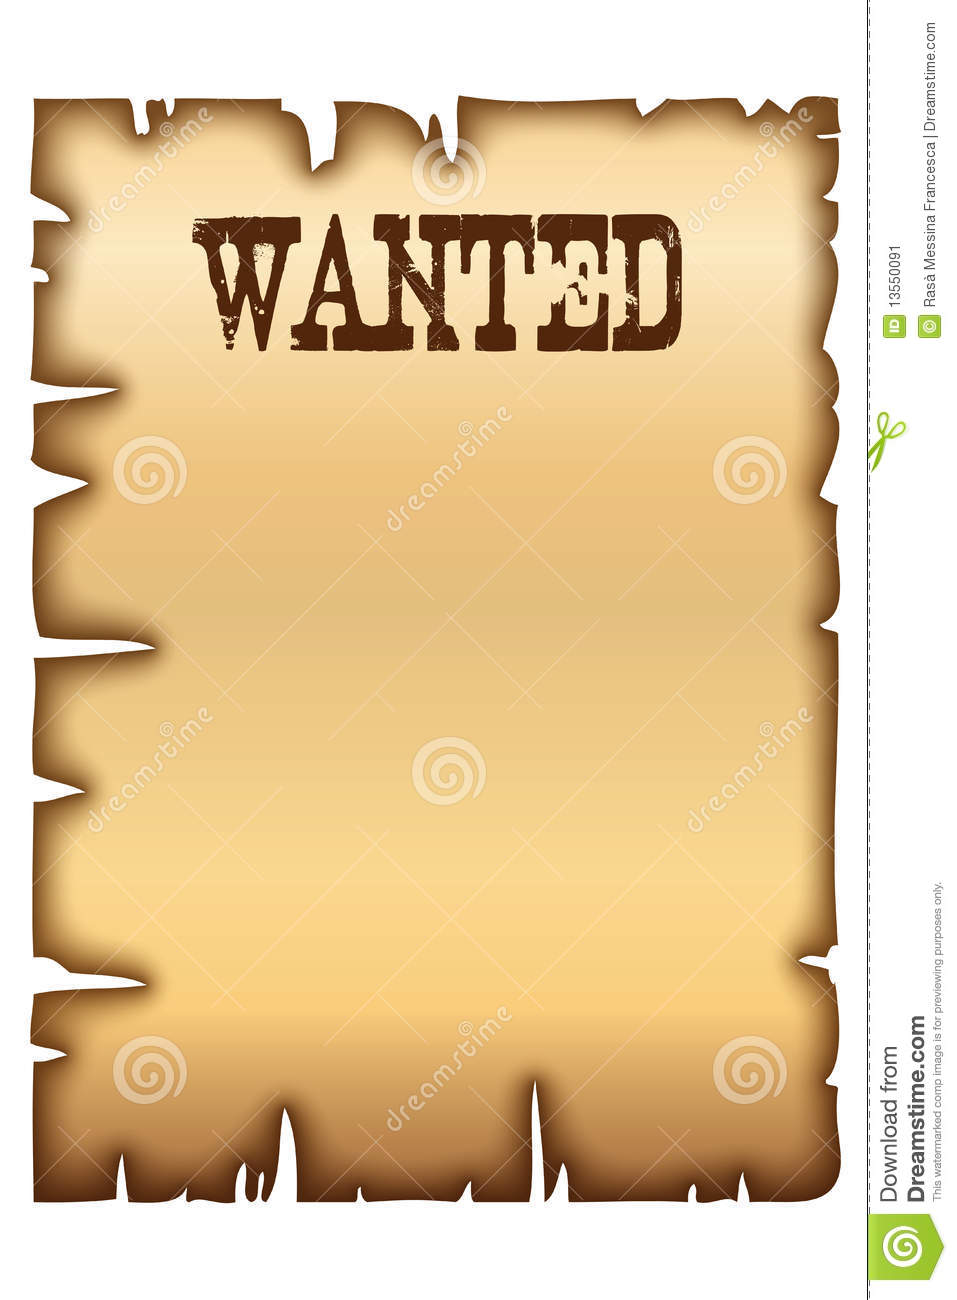 Wanted Poster Image Image 13550091 – Free Printable Wanted Poster